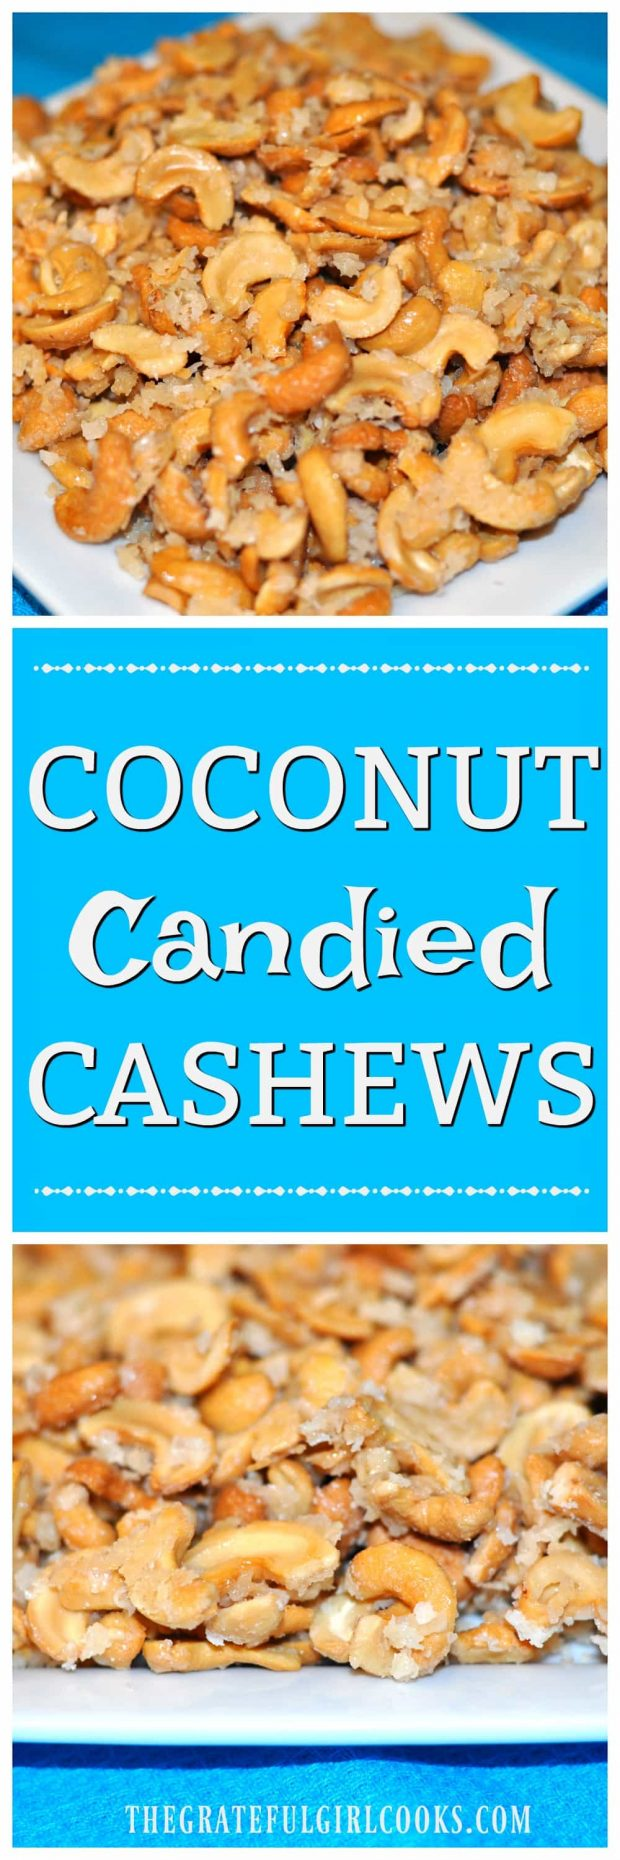 Coconut Candied Cashews | The Grateful Girl Cooks!